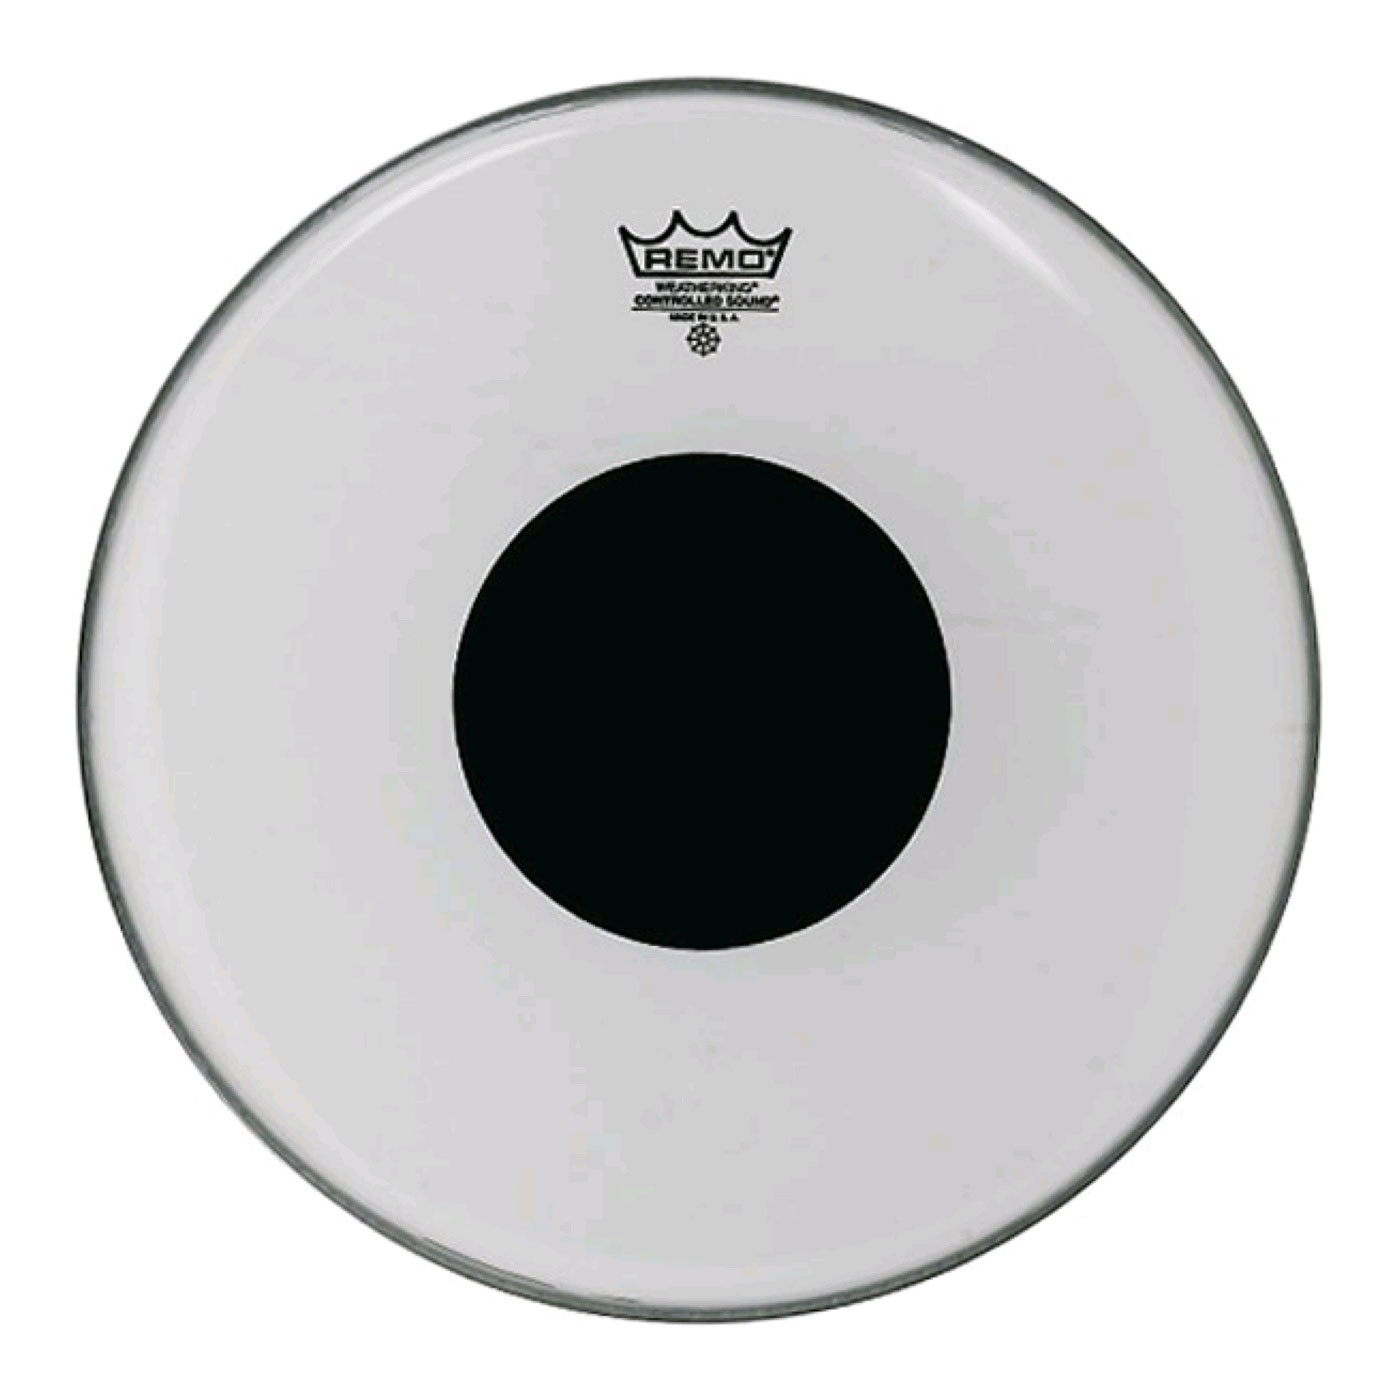 "Remo 24"" Controlled Sound Clear Bass Drum Head with Black Dot"